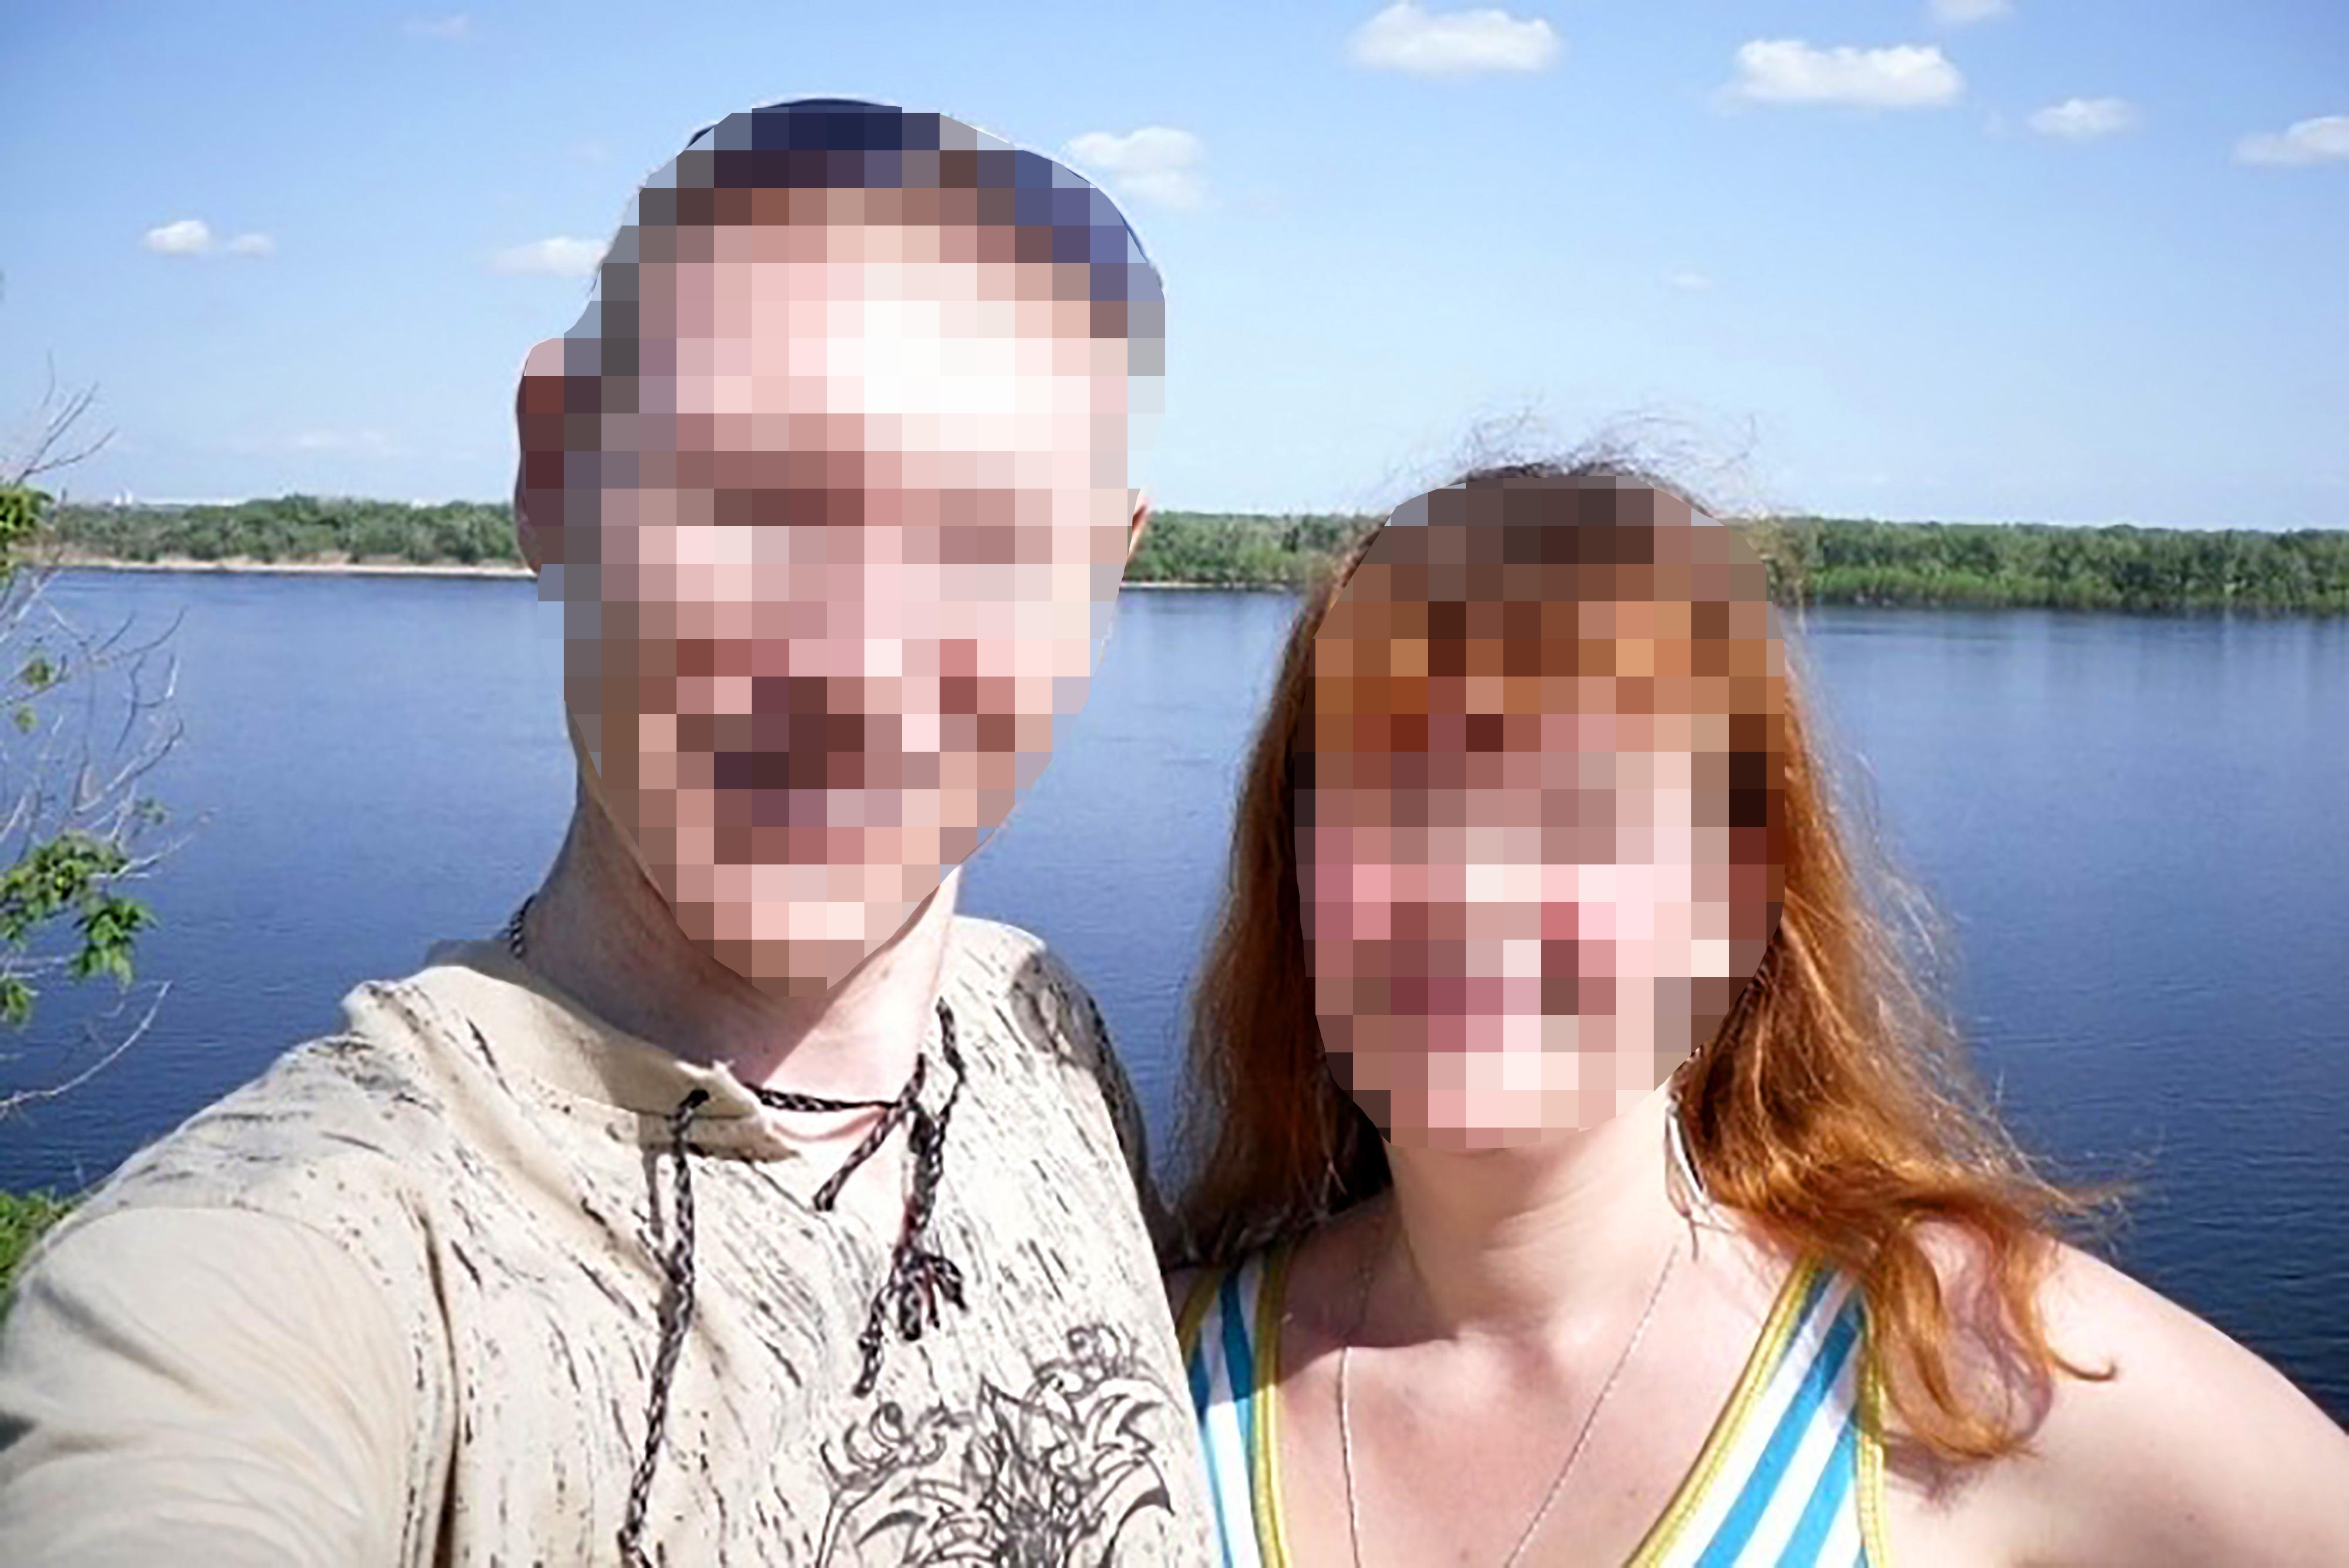 Russians demand castration or death for 'evil paedo' couple who raped and sexually abused their 12 year old daughter